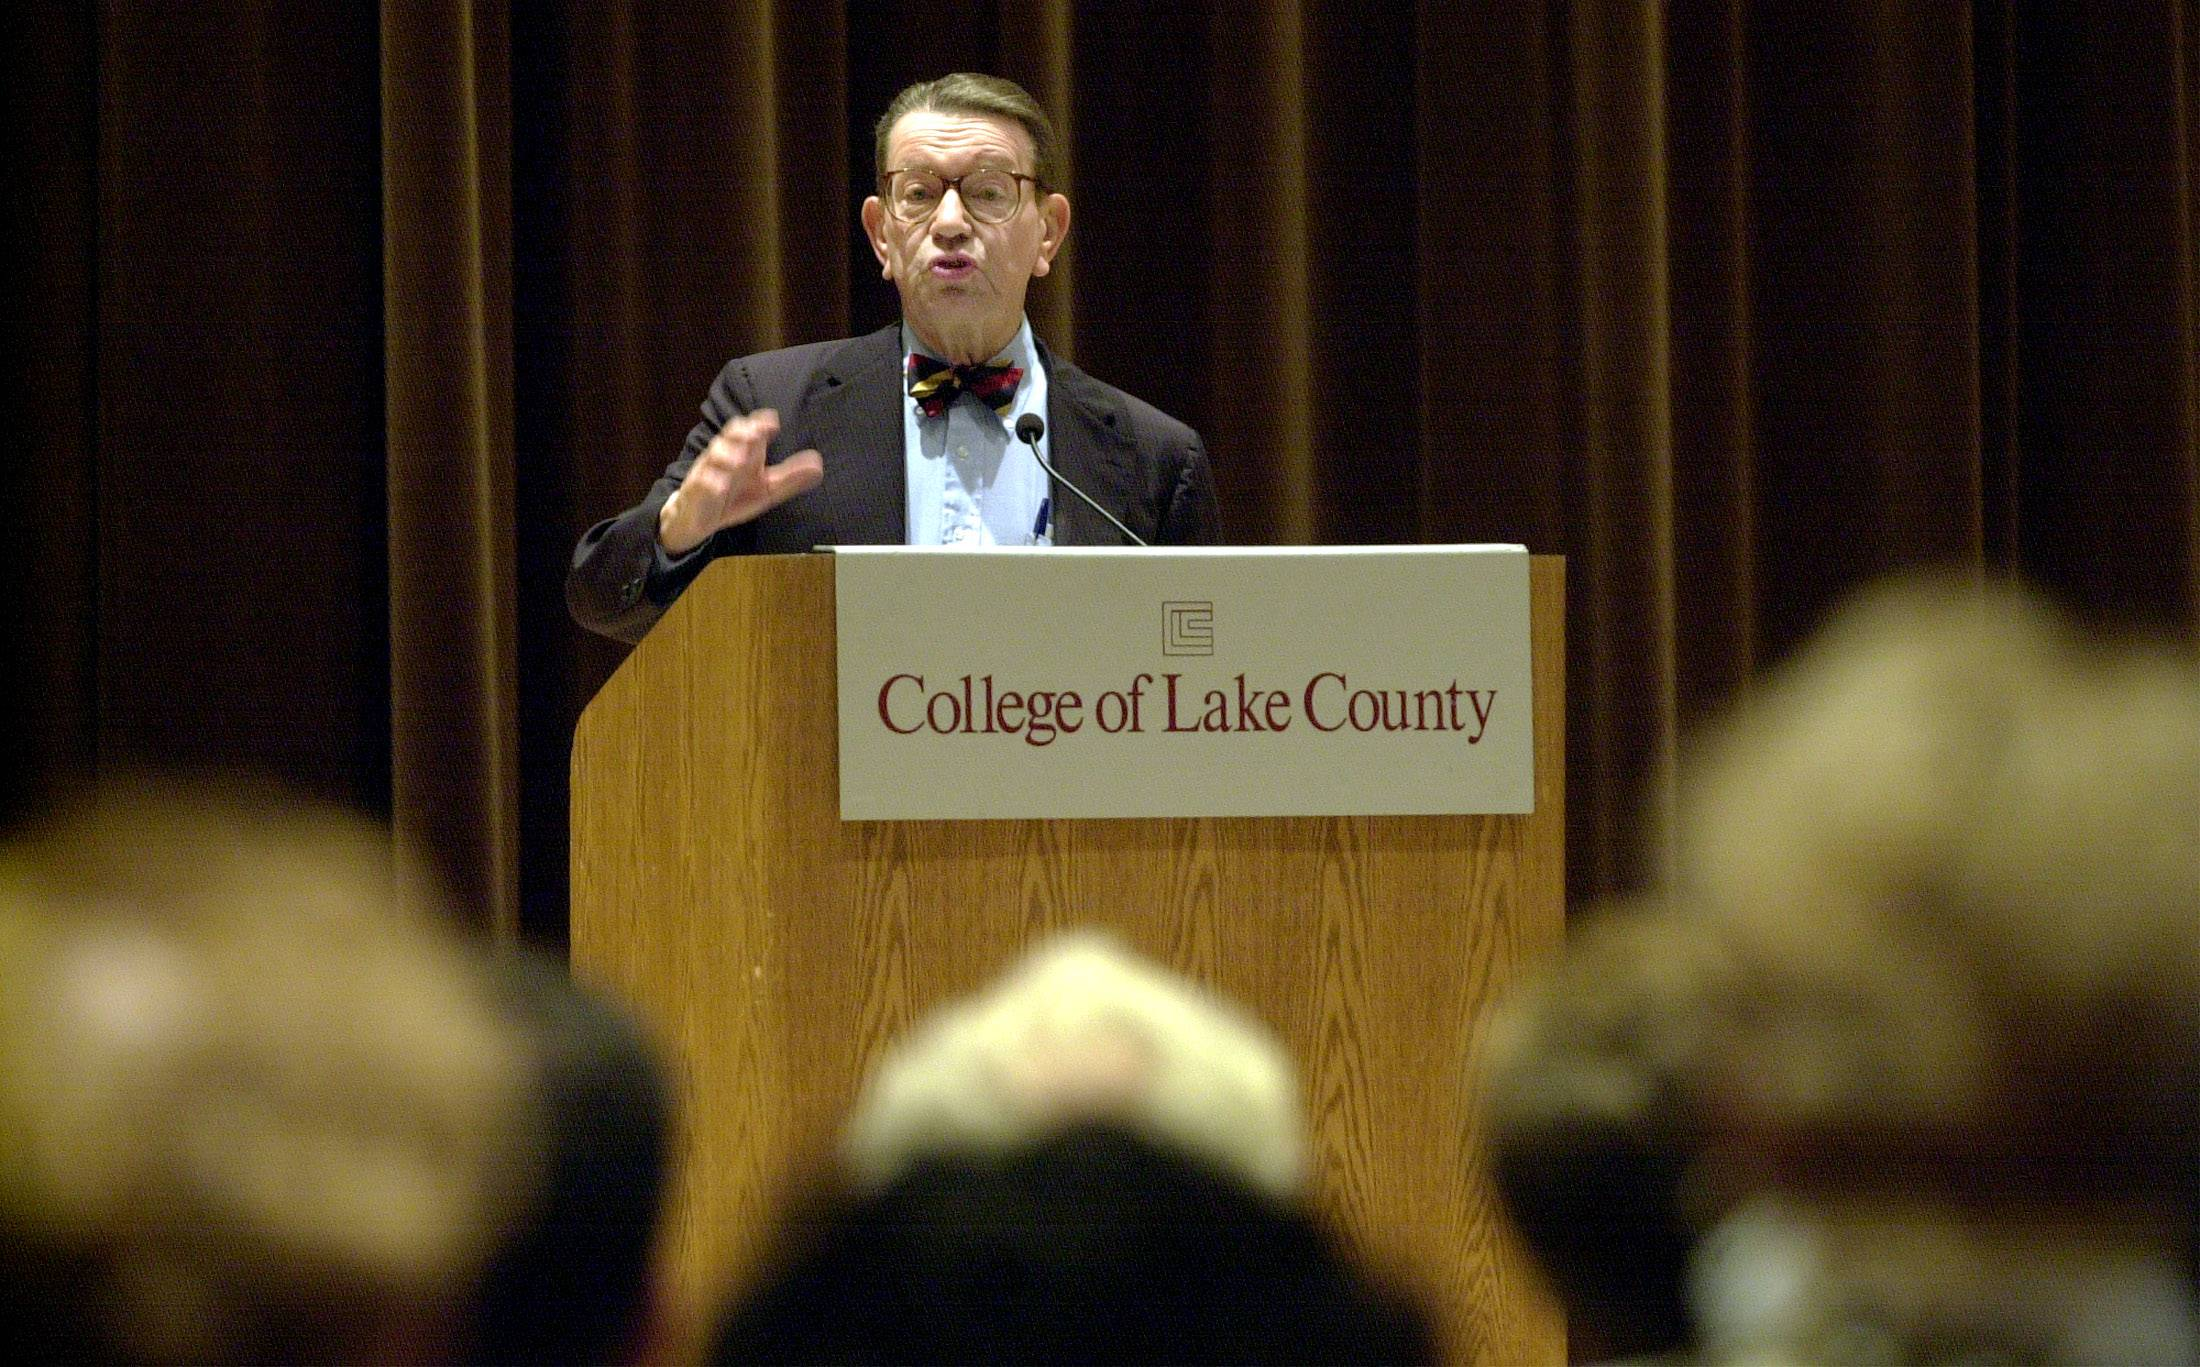 Former U.S. Sen. Paul Simon gives a speech in 2002 at the College of Lake County in Grayslake.